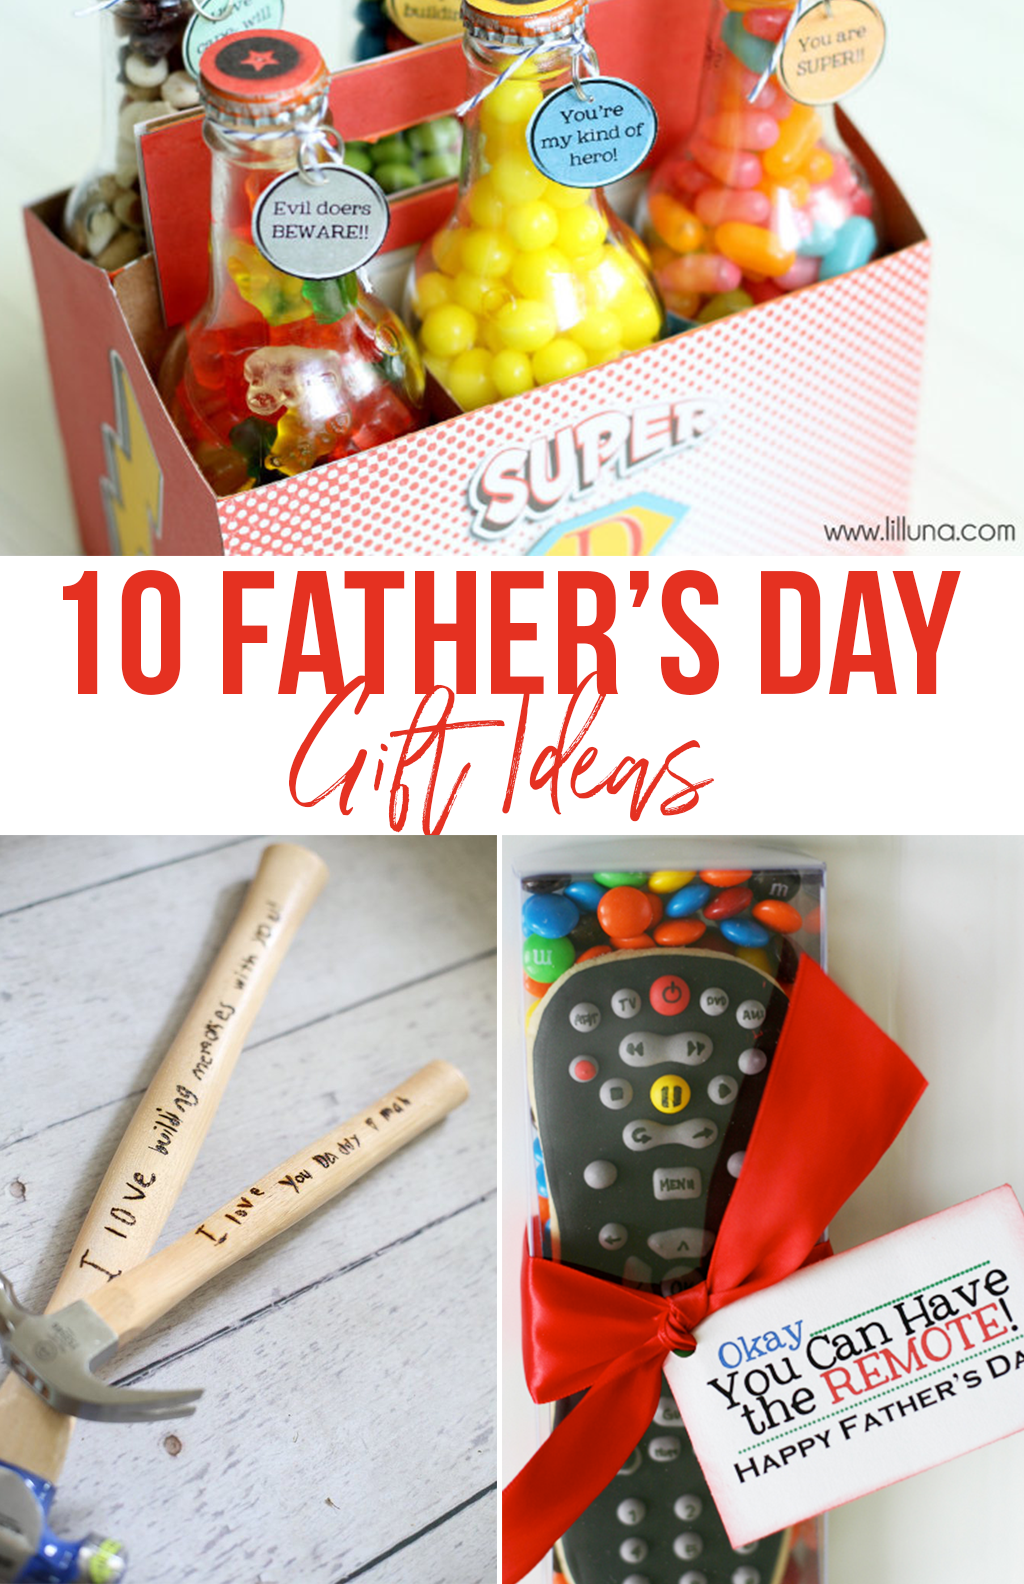 Father's Day Gift Ideas. Here are 10 gift ideas that will make fantastic Father's Day gifts!